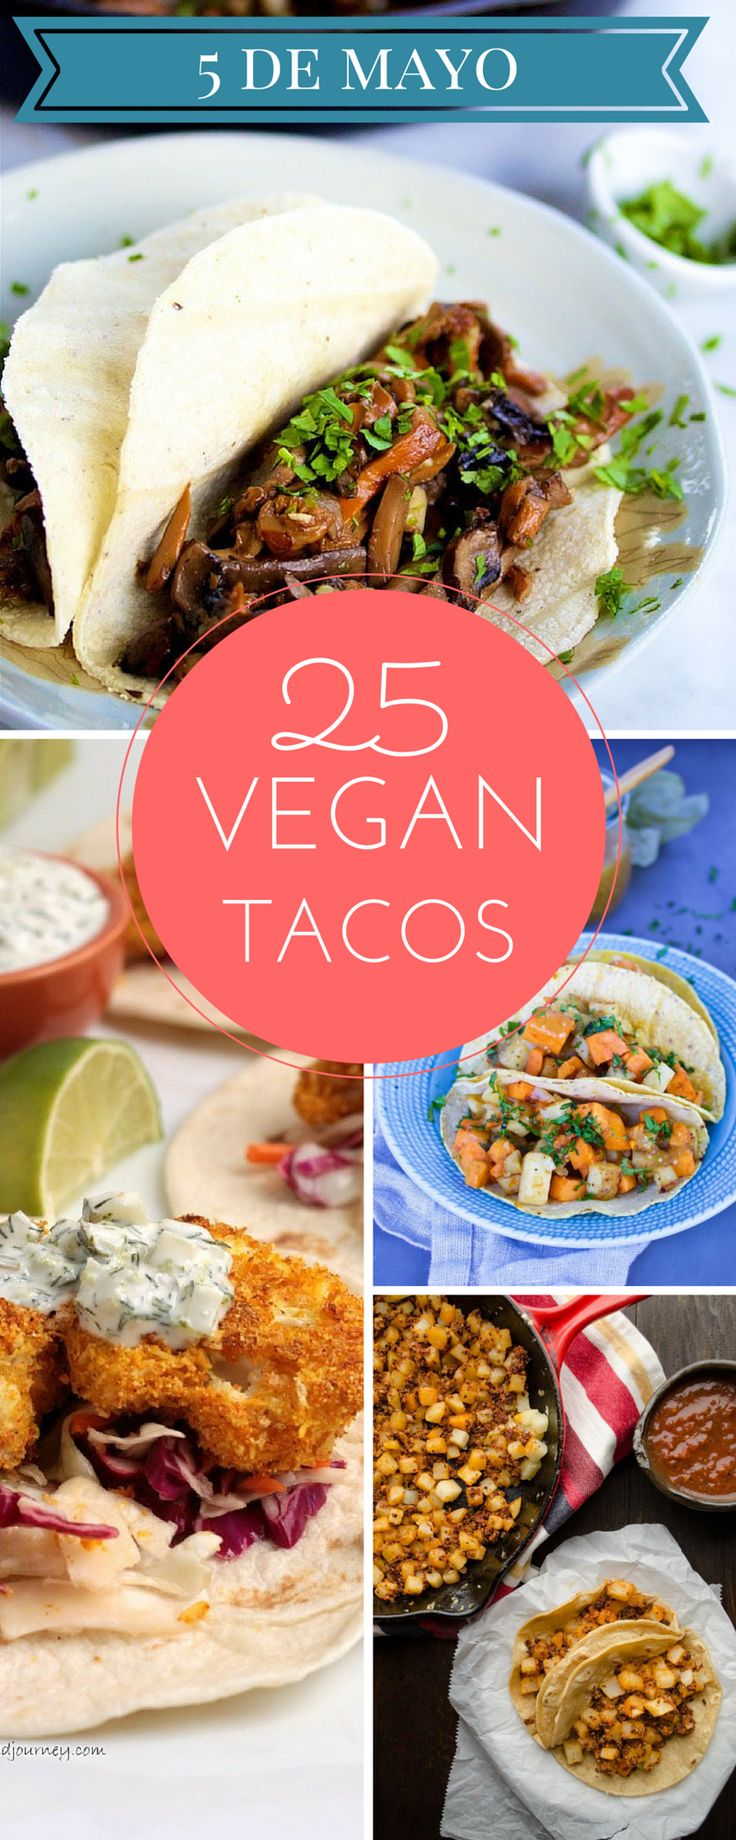 The Best 25 Vegan Tacos for 5 de Mayo. Throw a taquiza (taco party) and impress your guests with your mad vegan cooking skills.